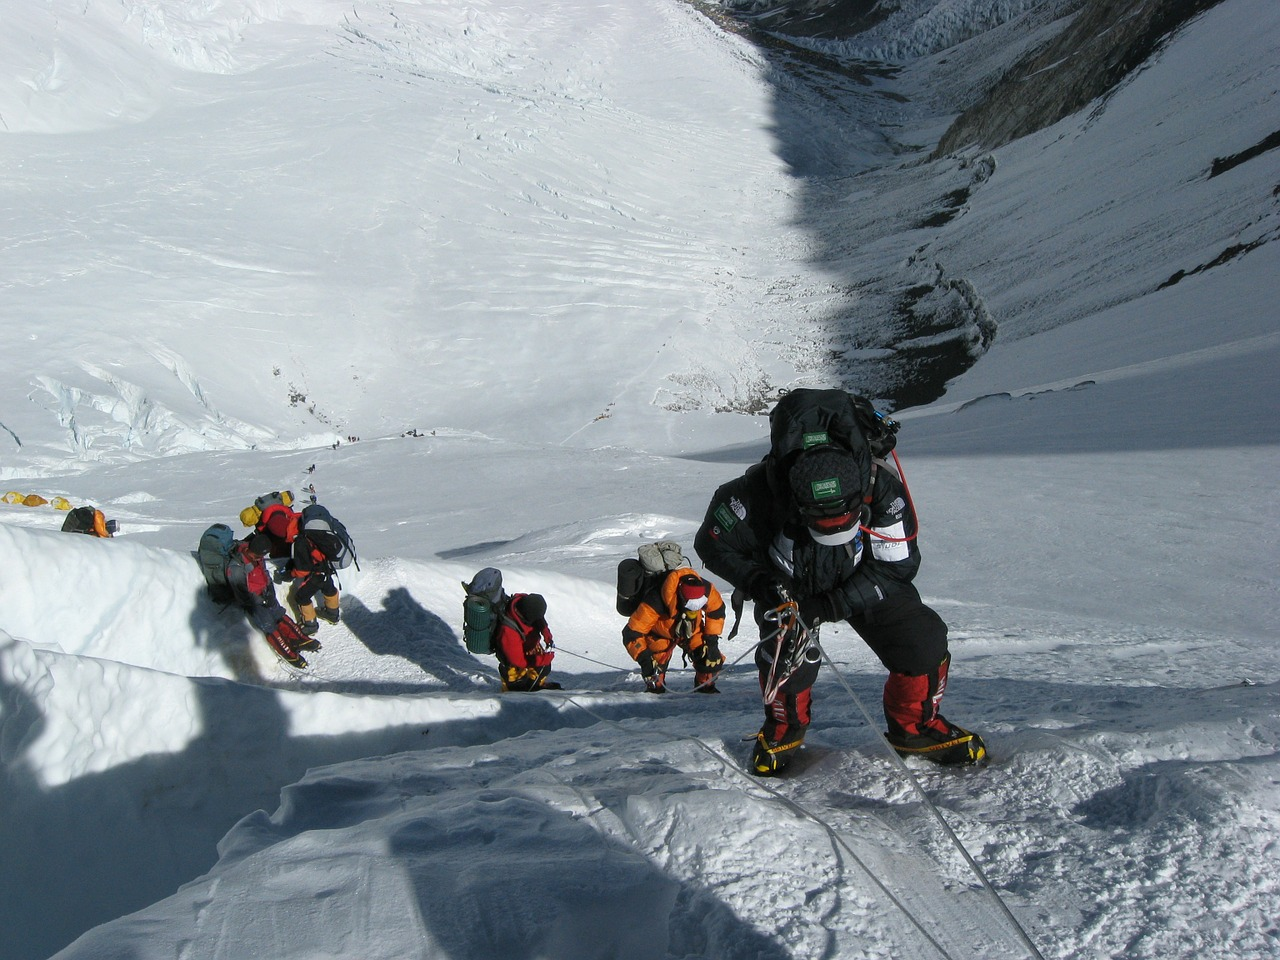 Fancy scaling Mount Everest - or at least getting to Base Camp - for an active summer vacation?